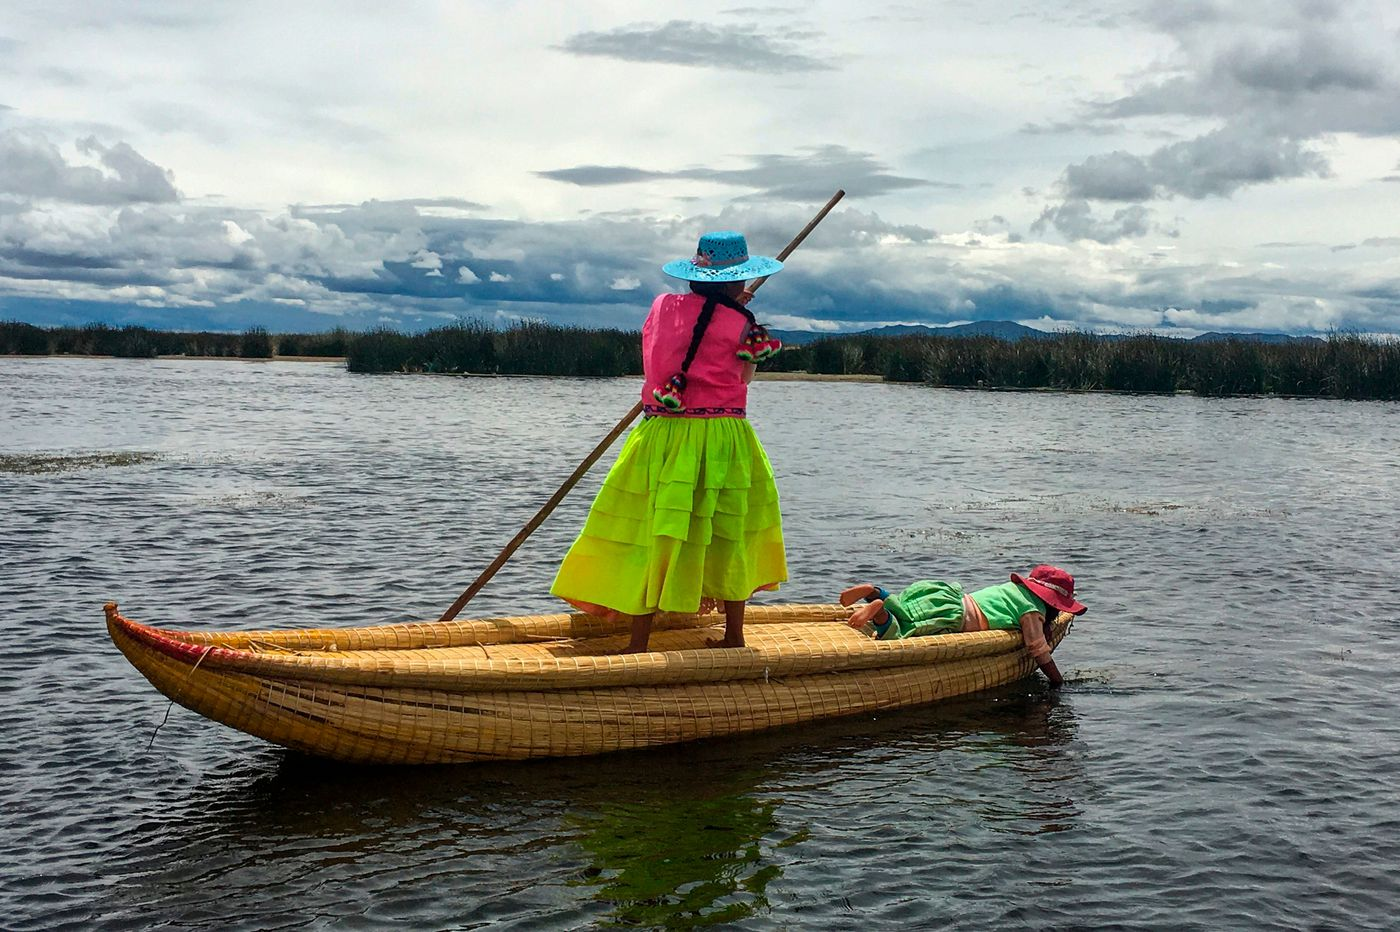 On Lake Titicaca in Peru, villagers want to draw tourists — but on their own terms